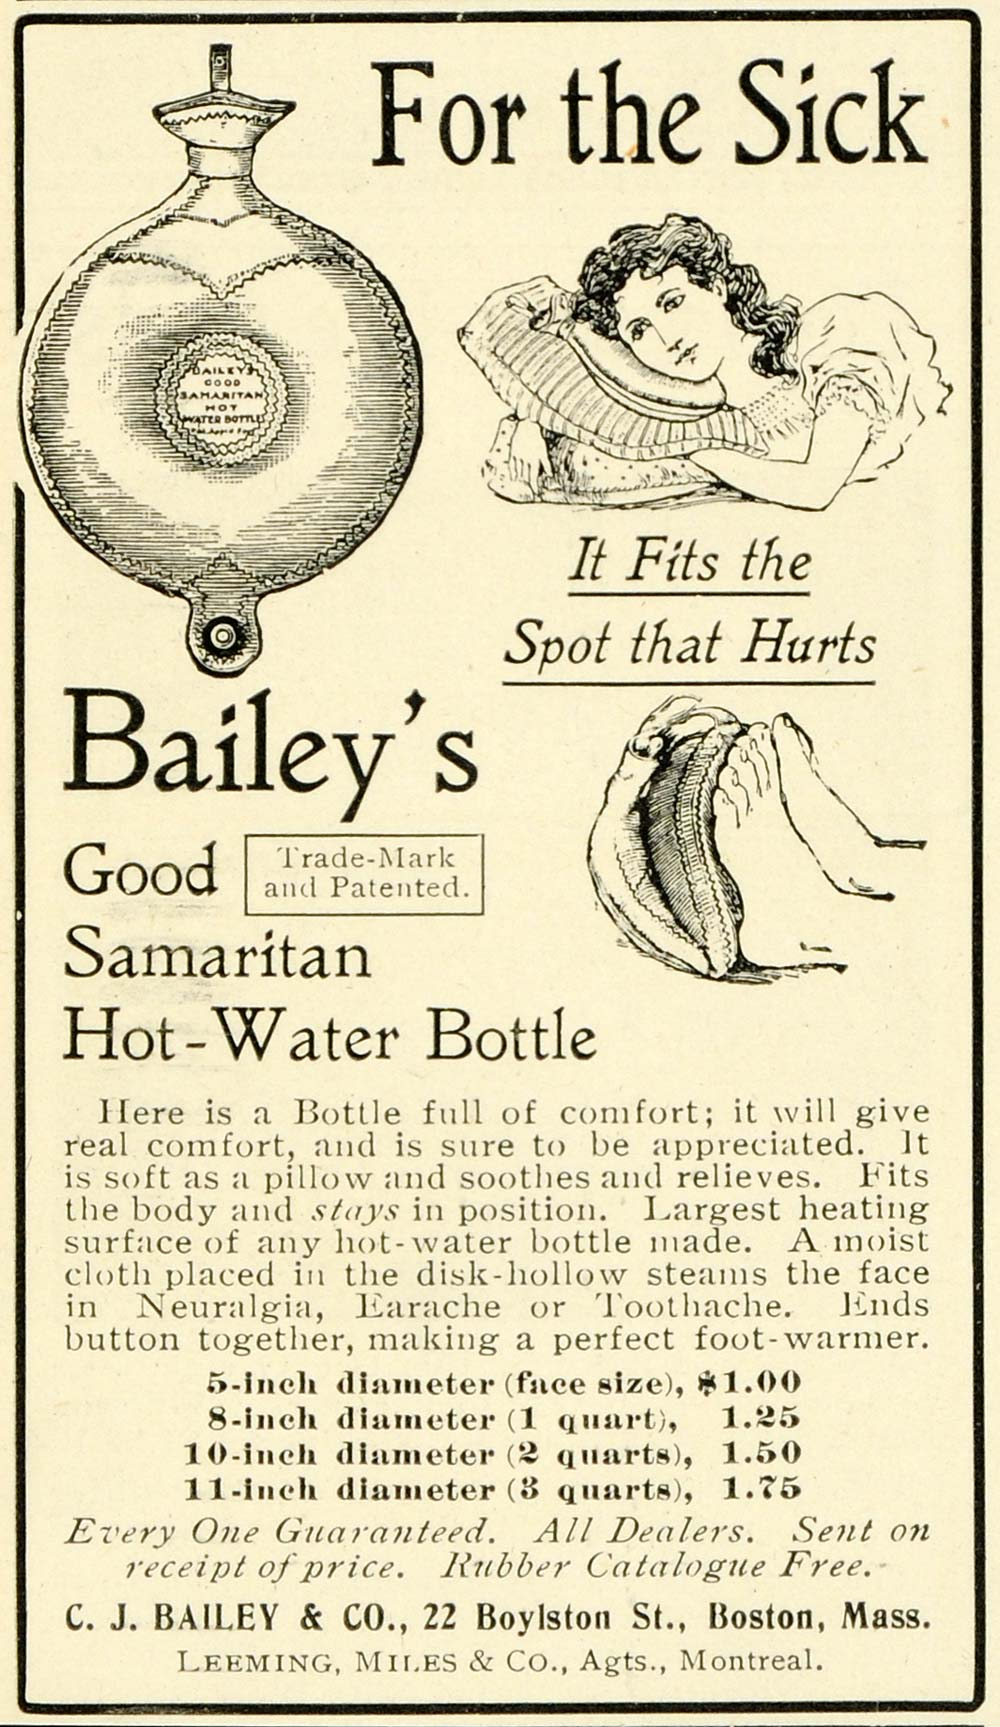 1902 Ad C. J. Bailey's Good Samaritan Hot Pack Water Bottle Achy Sore LHJ6